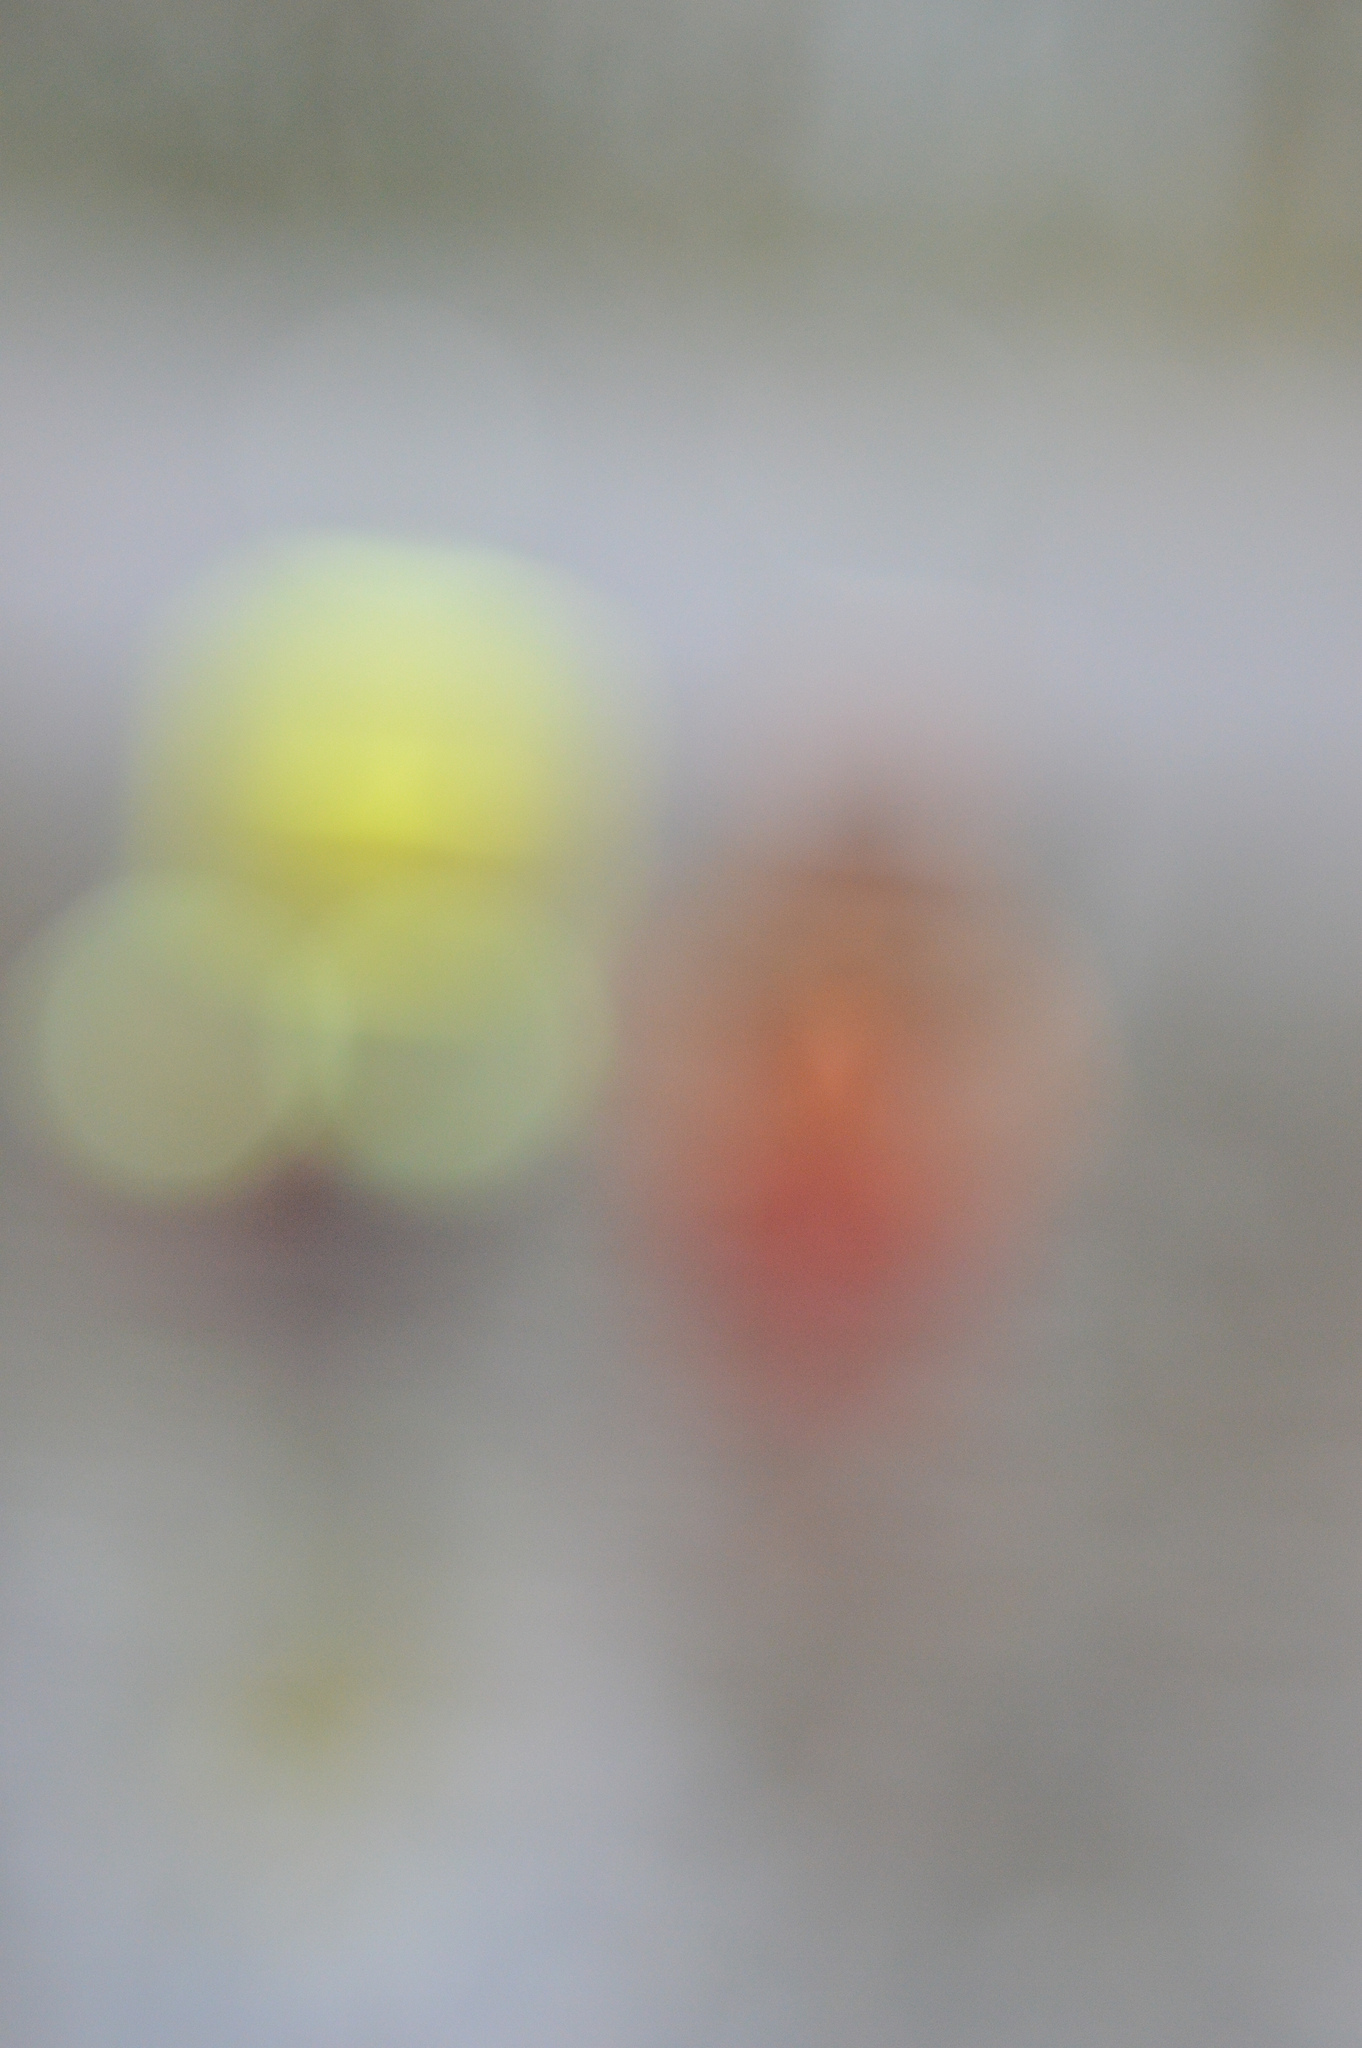 Toys out of focus